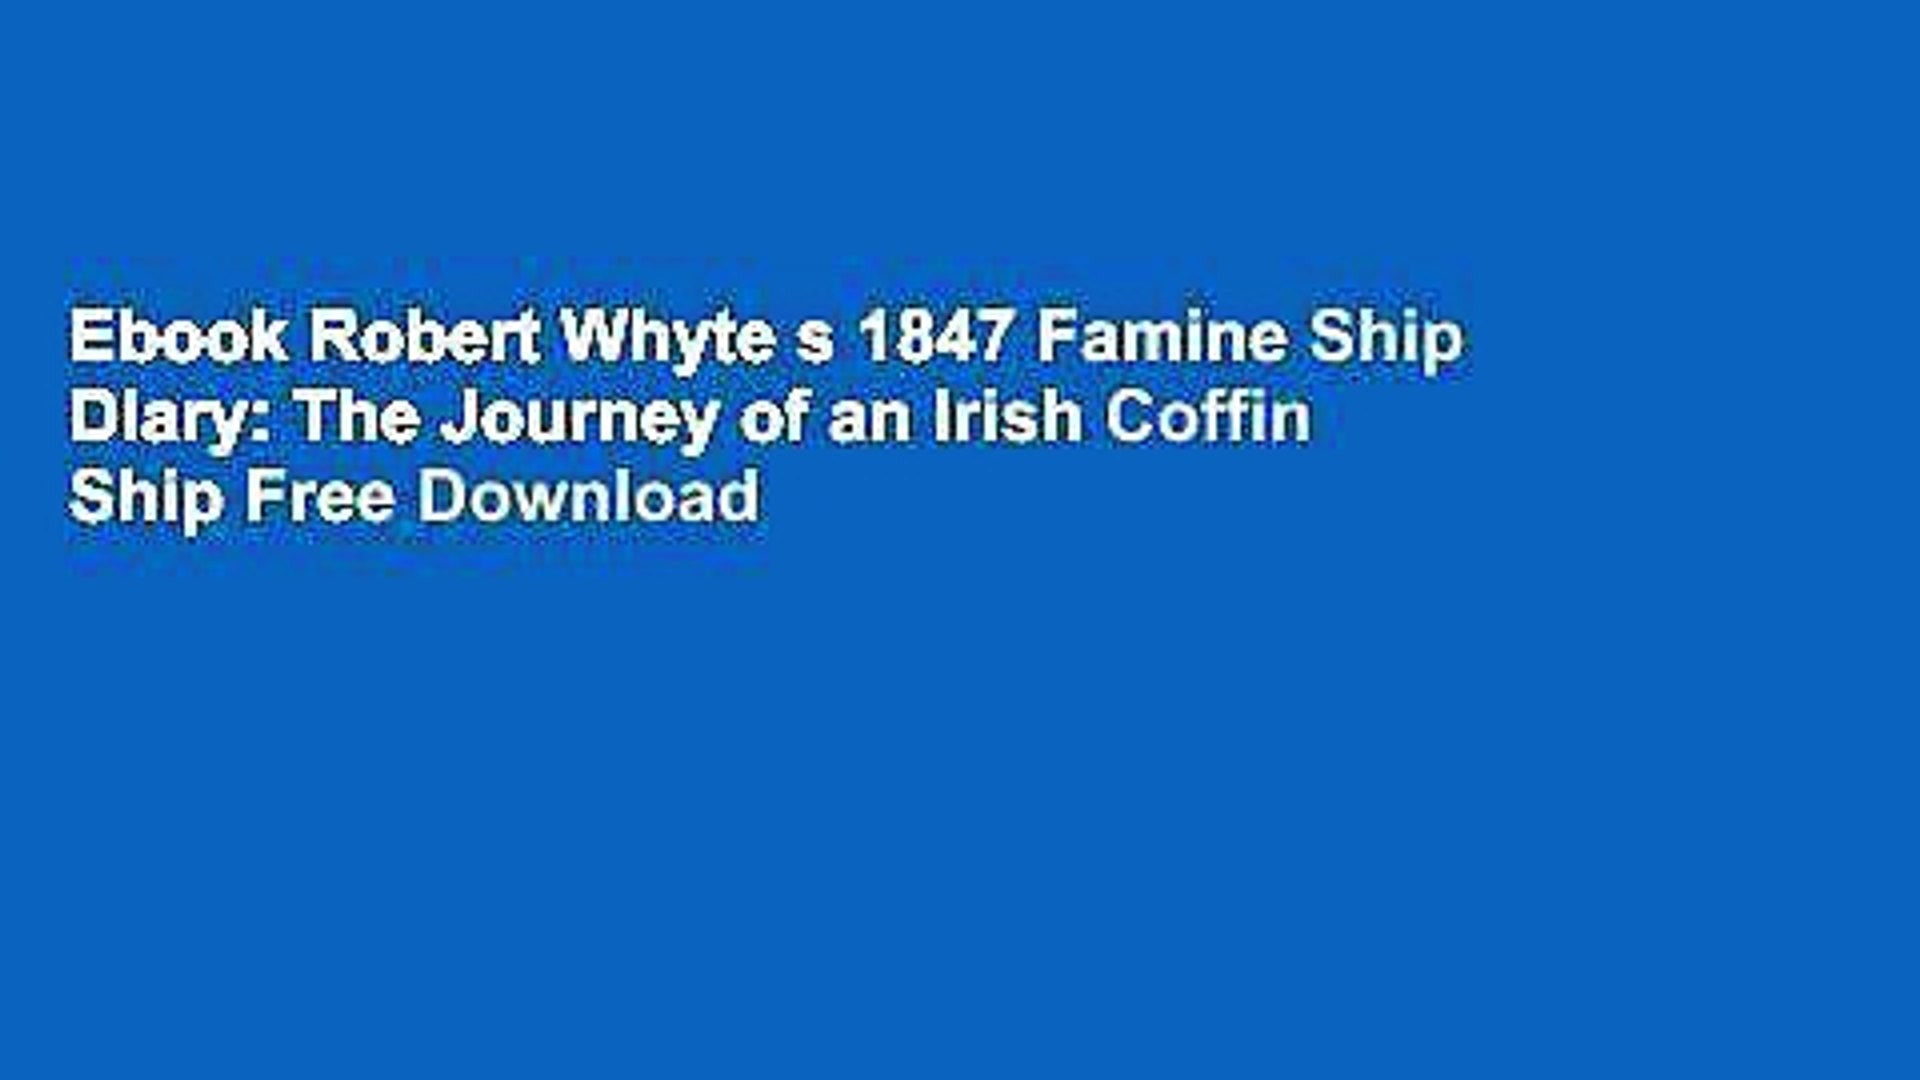 The Journey of an Irish Coffin Ship Robert Whytes Famine Ship Diary 1847